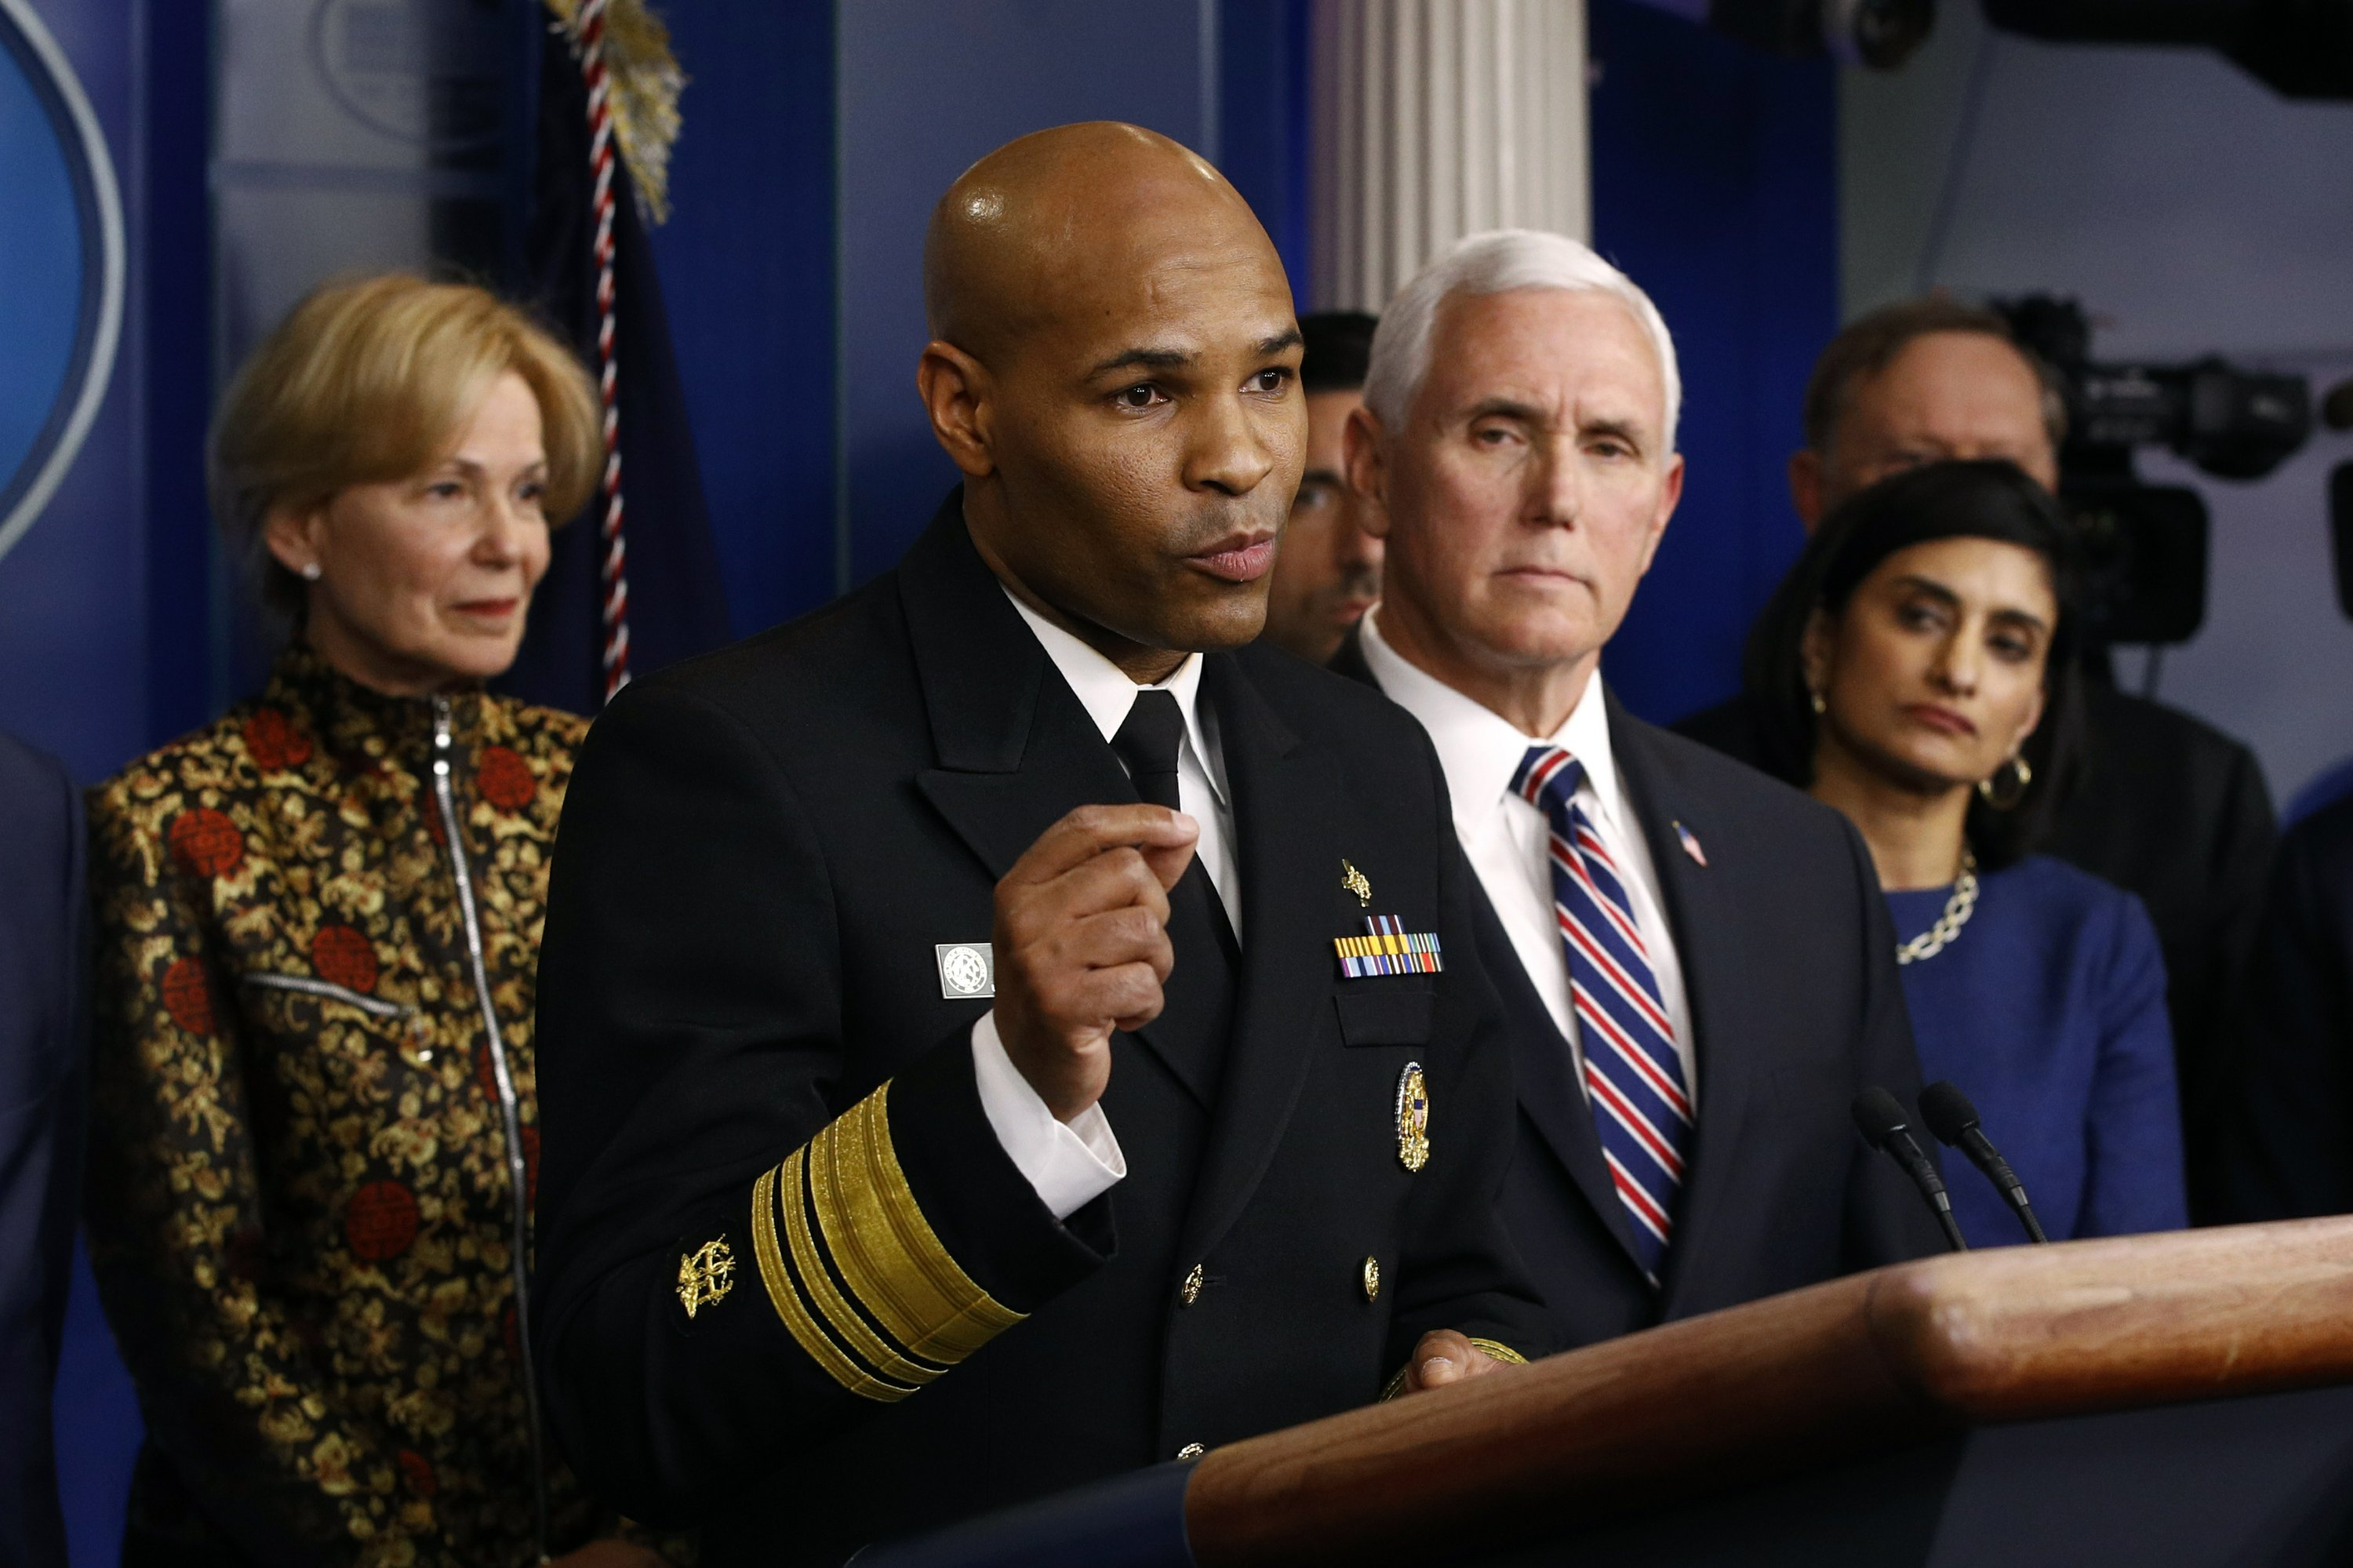 US Surgeon General Dr. Jerome Adams Urges Caution on US Coronavirus Plague Death Rate